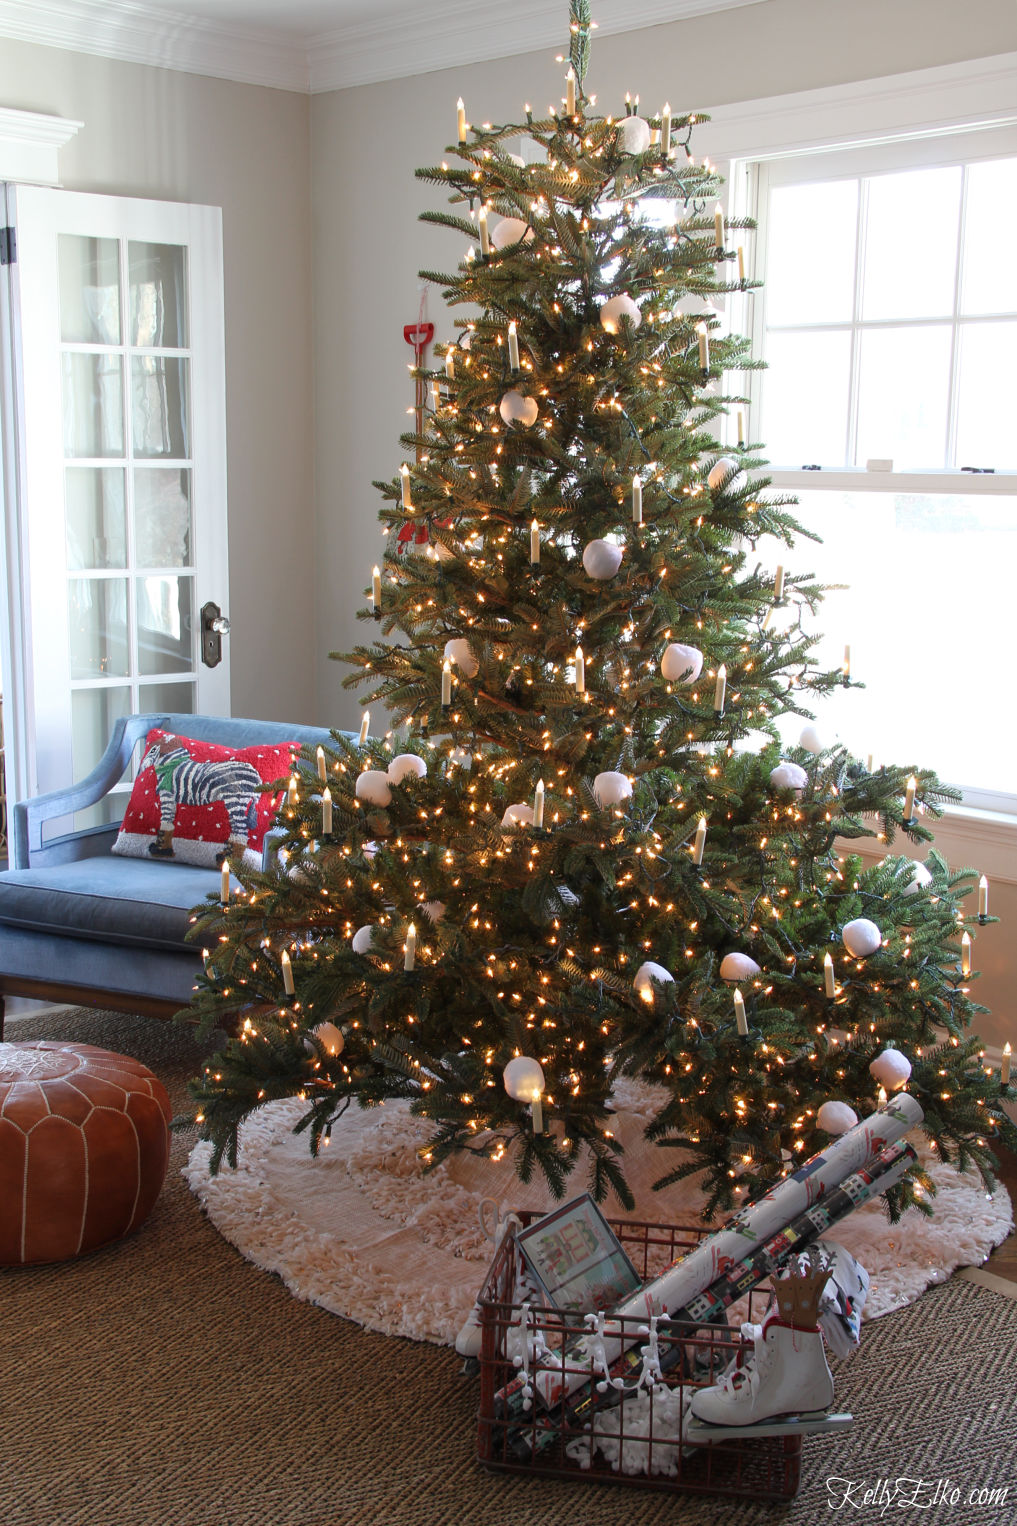 Wow this is the most realistic Christmas tree I've ever seen! Love the candle lights and Moroccan blanket tree skirt kellyelko.com #christmastree #christmasdecor #christmasdecorating #farmhousechristmas #christmaslights #bohochristmas #farmhousechristmas #christmaslivingroom #vintagechristmas #balsamhill